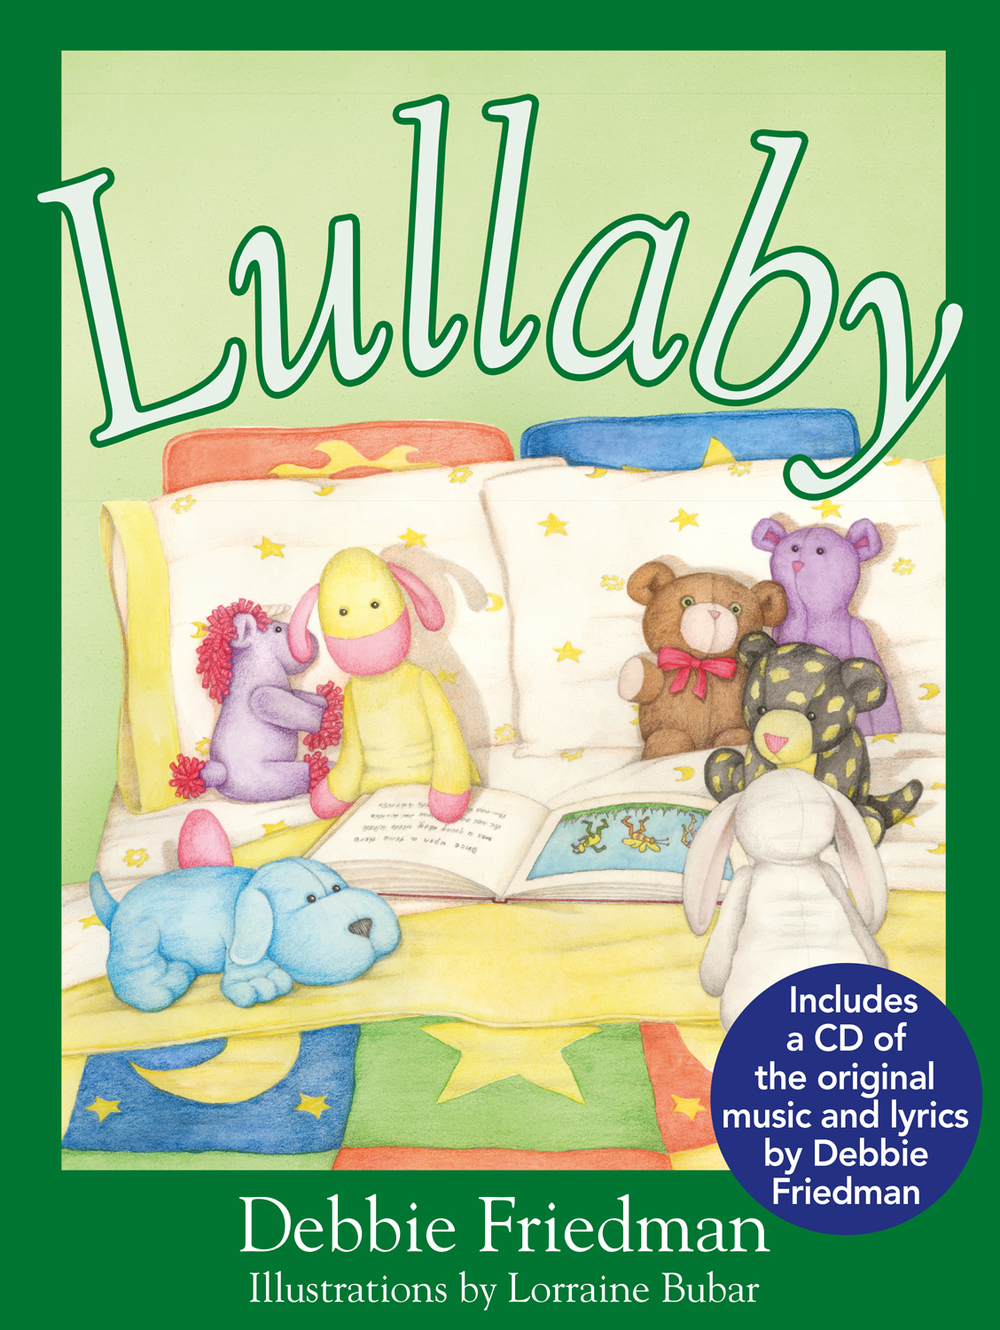 Jewish Lights Publishing has released LULLABY, a children's book with lyrics and music by Debbie Friedman and illustrations by Lorraine Bubar.